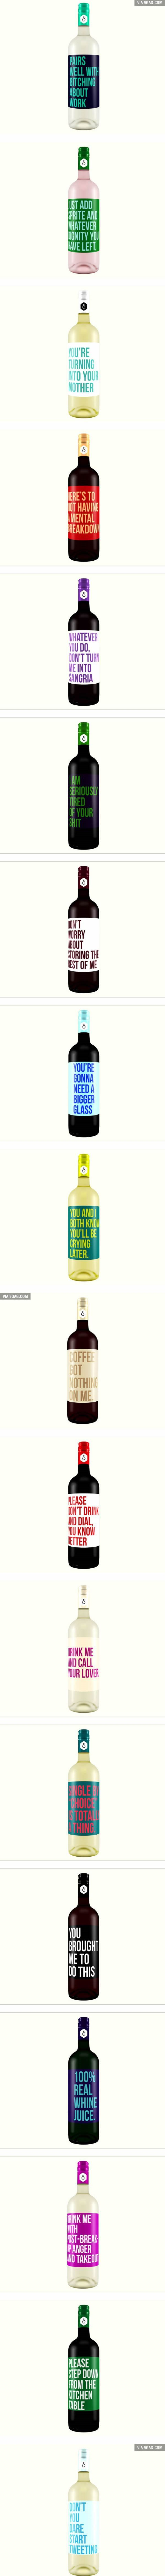 Brutally Honest Wine Labels - 9GAG                                                                                                                                                                                 More